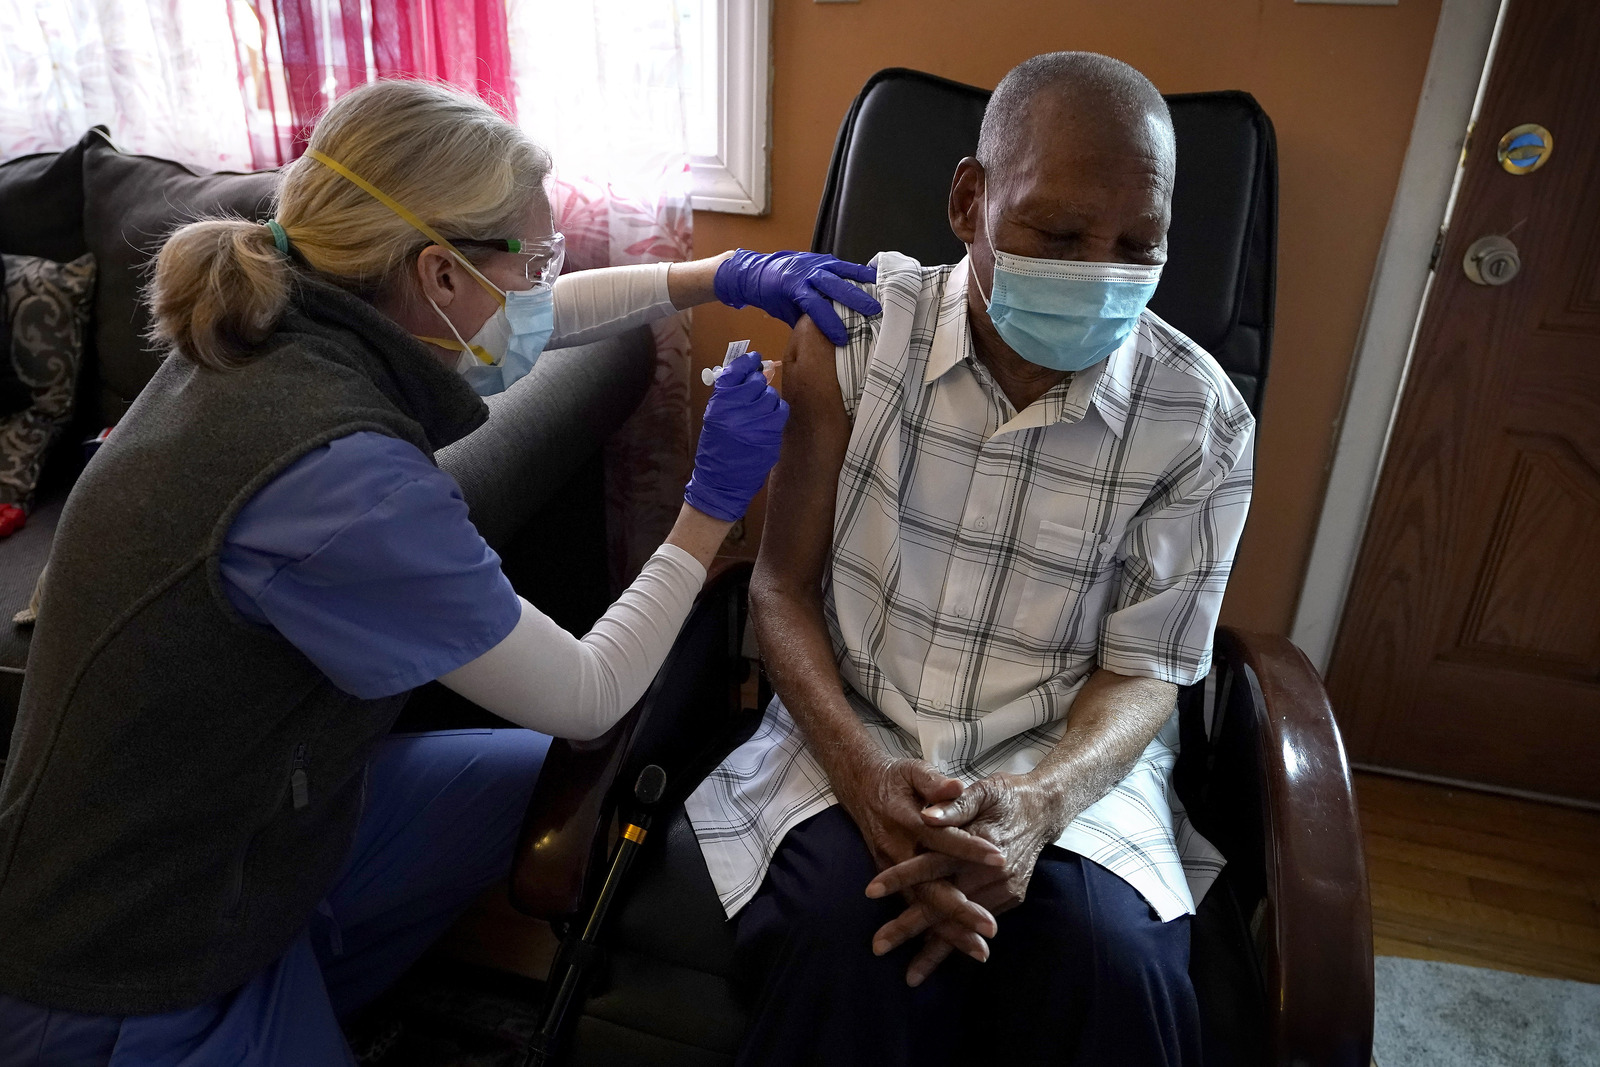 Geriatrician Dr. Megan Young gives Edouard Joseph, 91, a COVID-19 vaccination at his home in Boston's Mattapan neighborhood. Millions of U.S. residents will need COVID-19 vaccines brought to them because they rarely or never leave home.